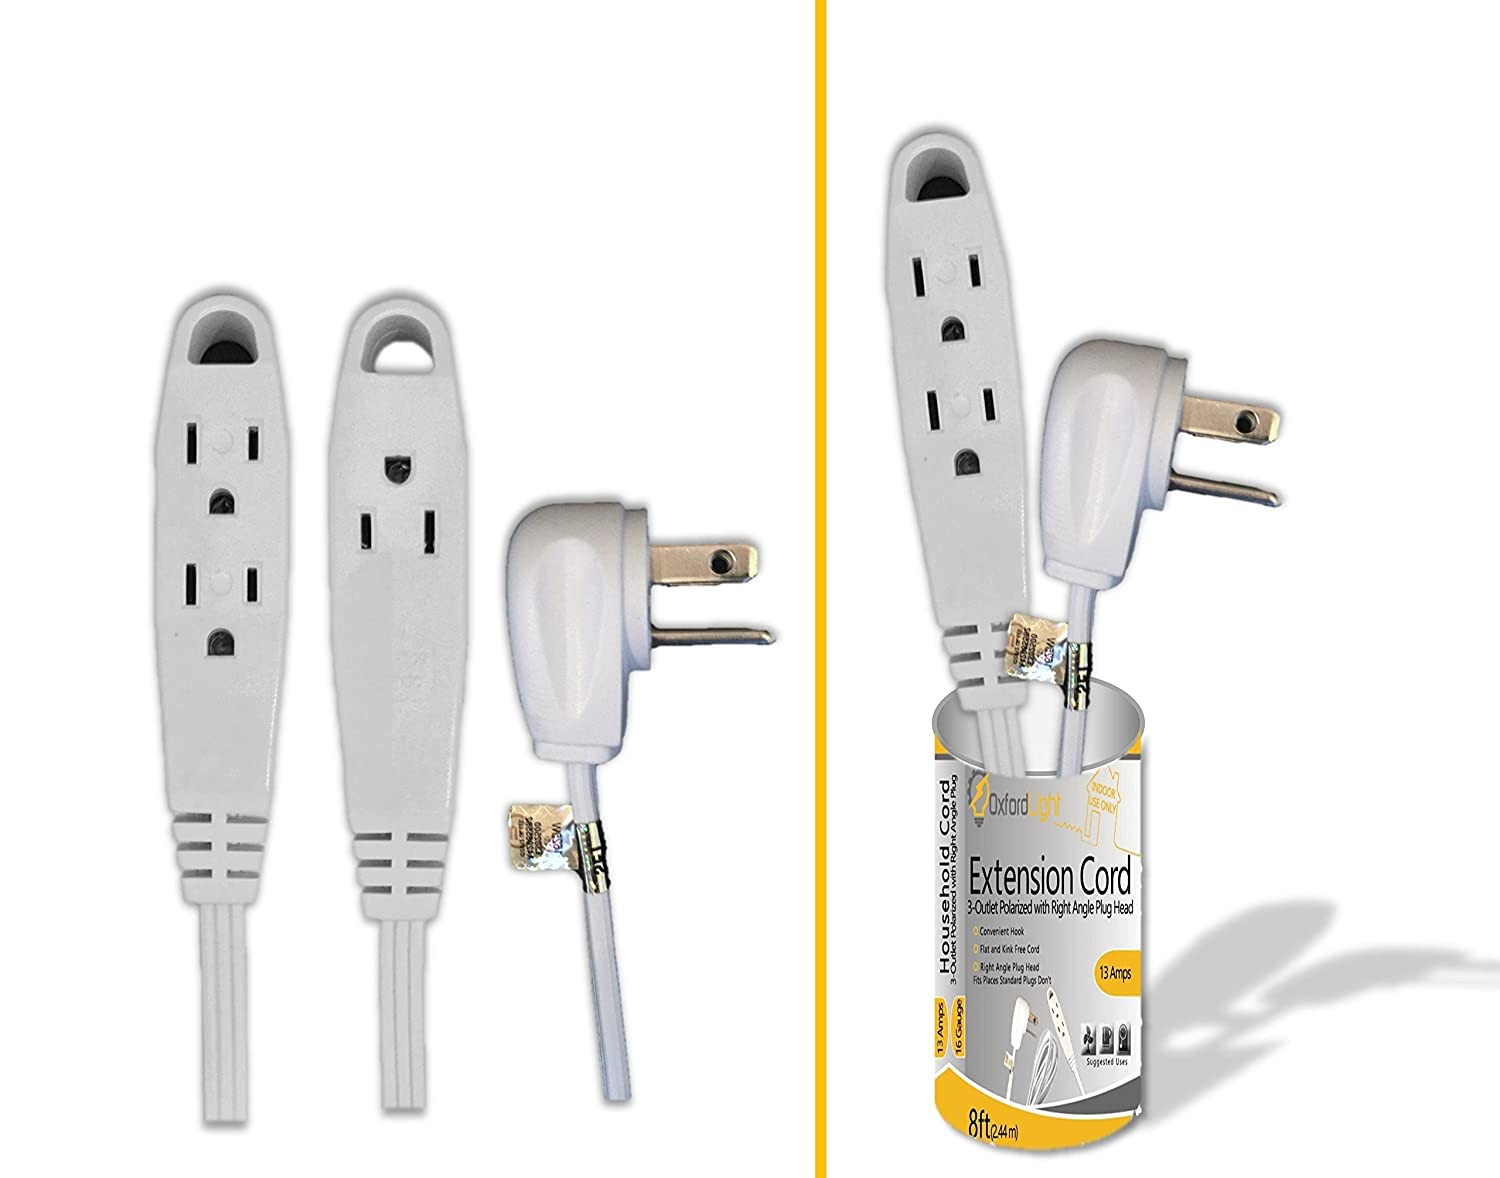 Oxford Light Top Rated 8 Ft White Extension Cord 3 Outlet Indoor Wiring A Plug Outdoor Ol454418 Flat Wire